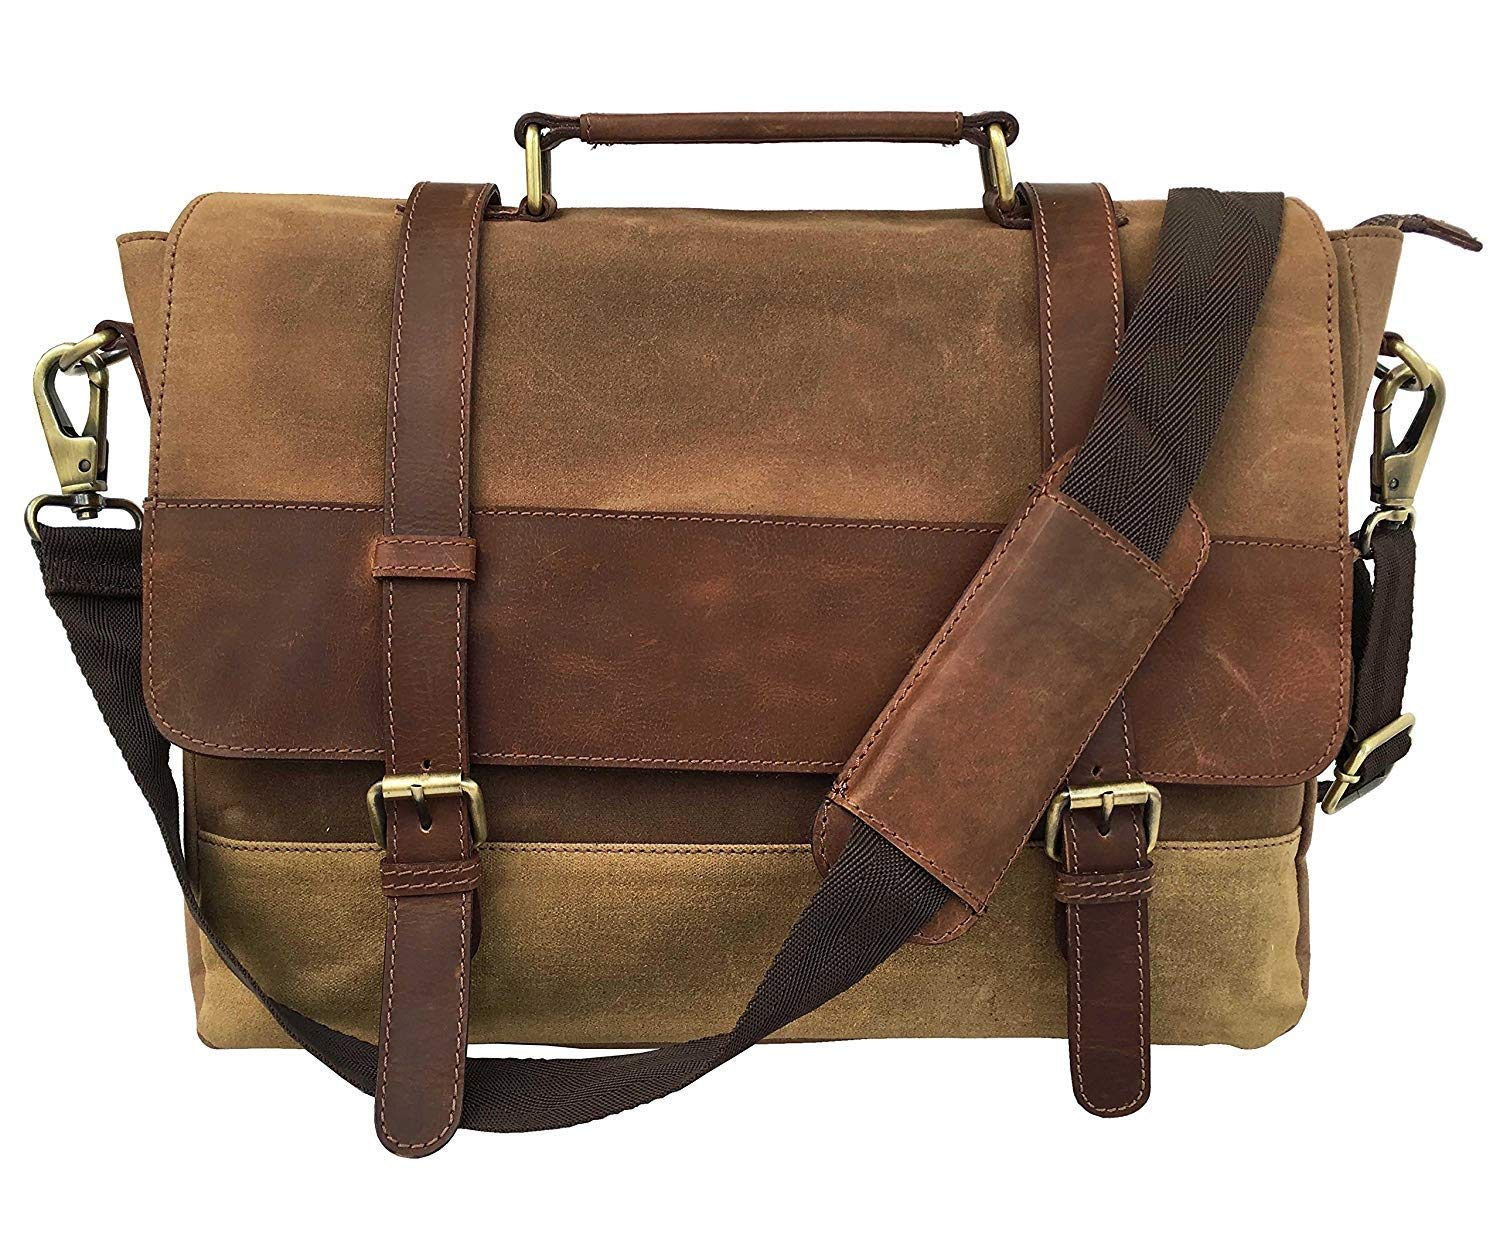 Leather Castle Messenger Bag/Vintage Leather Canvas Crossbody Shoulder Bag/15.6 Inch Laptop Satchel Briefcase Bag (Walnut Brown)